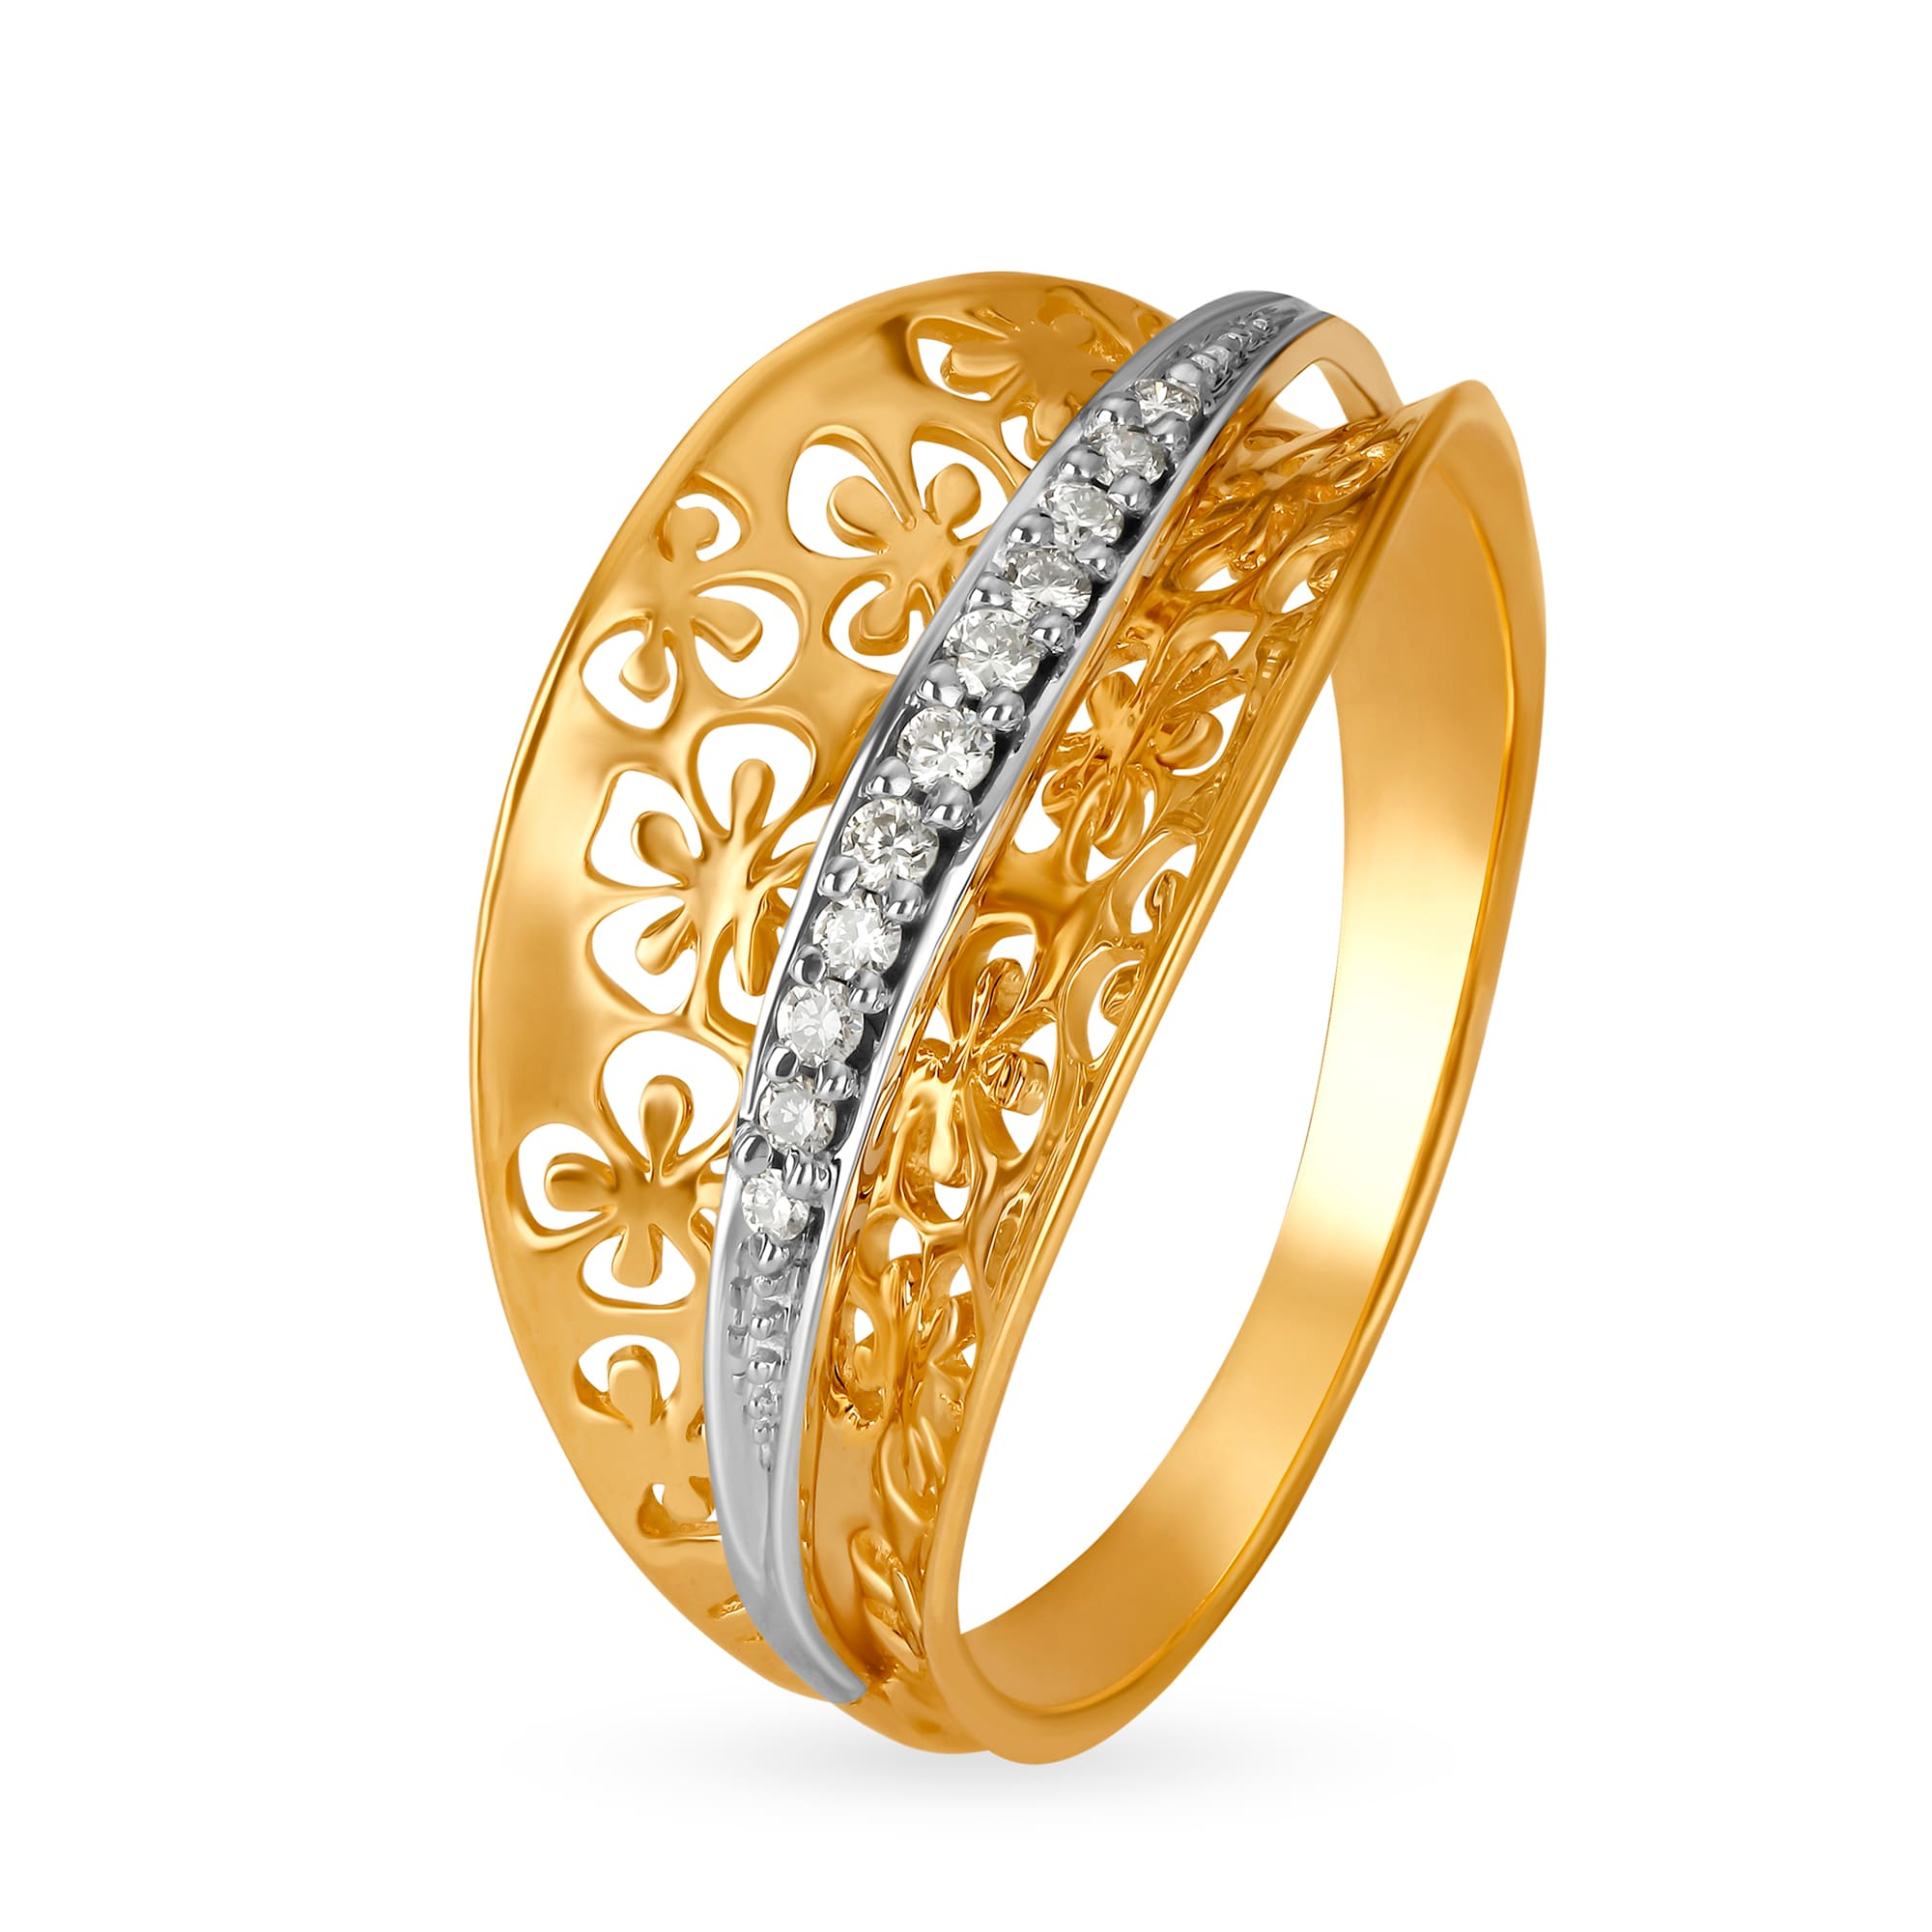 7a105771d Mia by Tanishq 14KT Yellow And White Gold Finger Ring w.